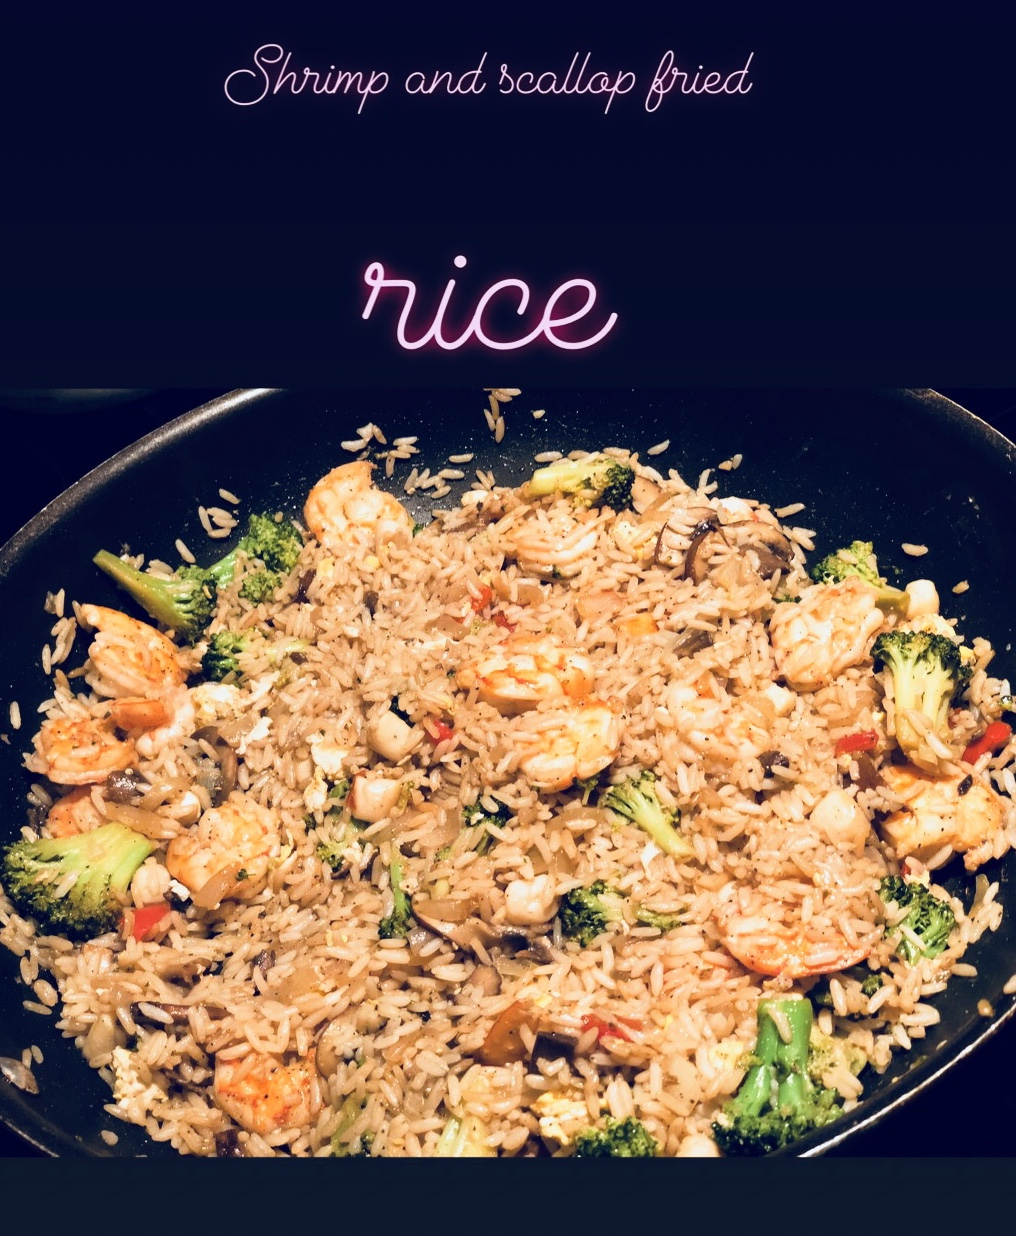 Recipe! Try Shrimp and Scallop Fried Rice at Home